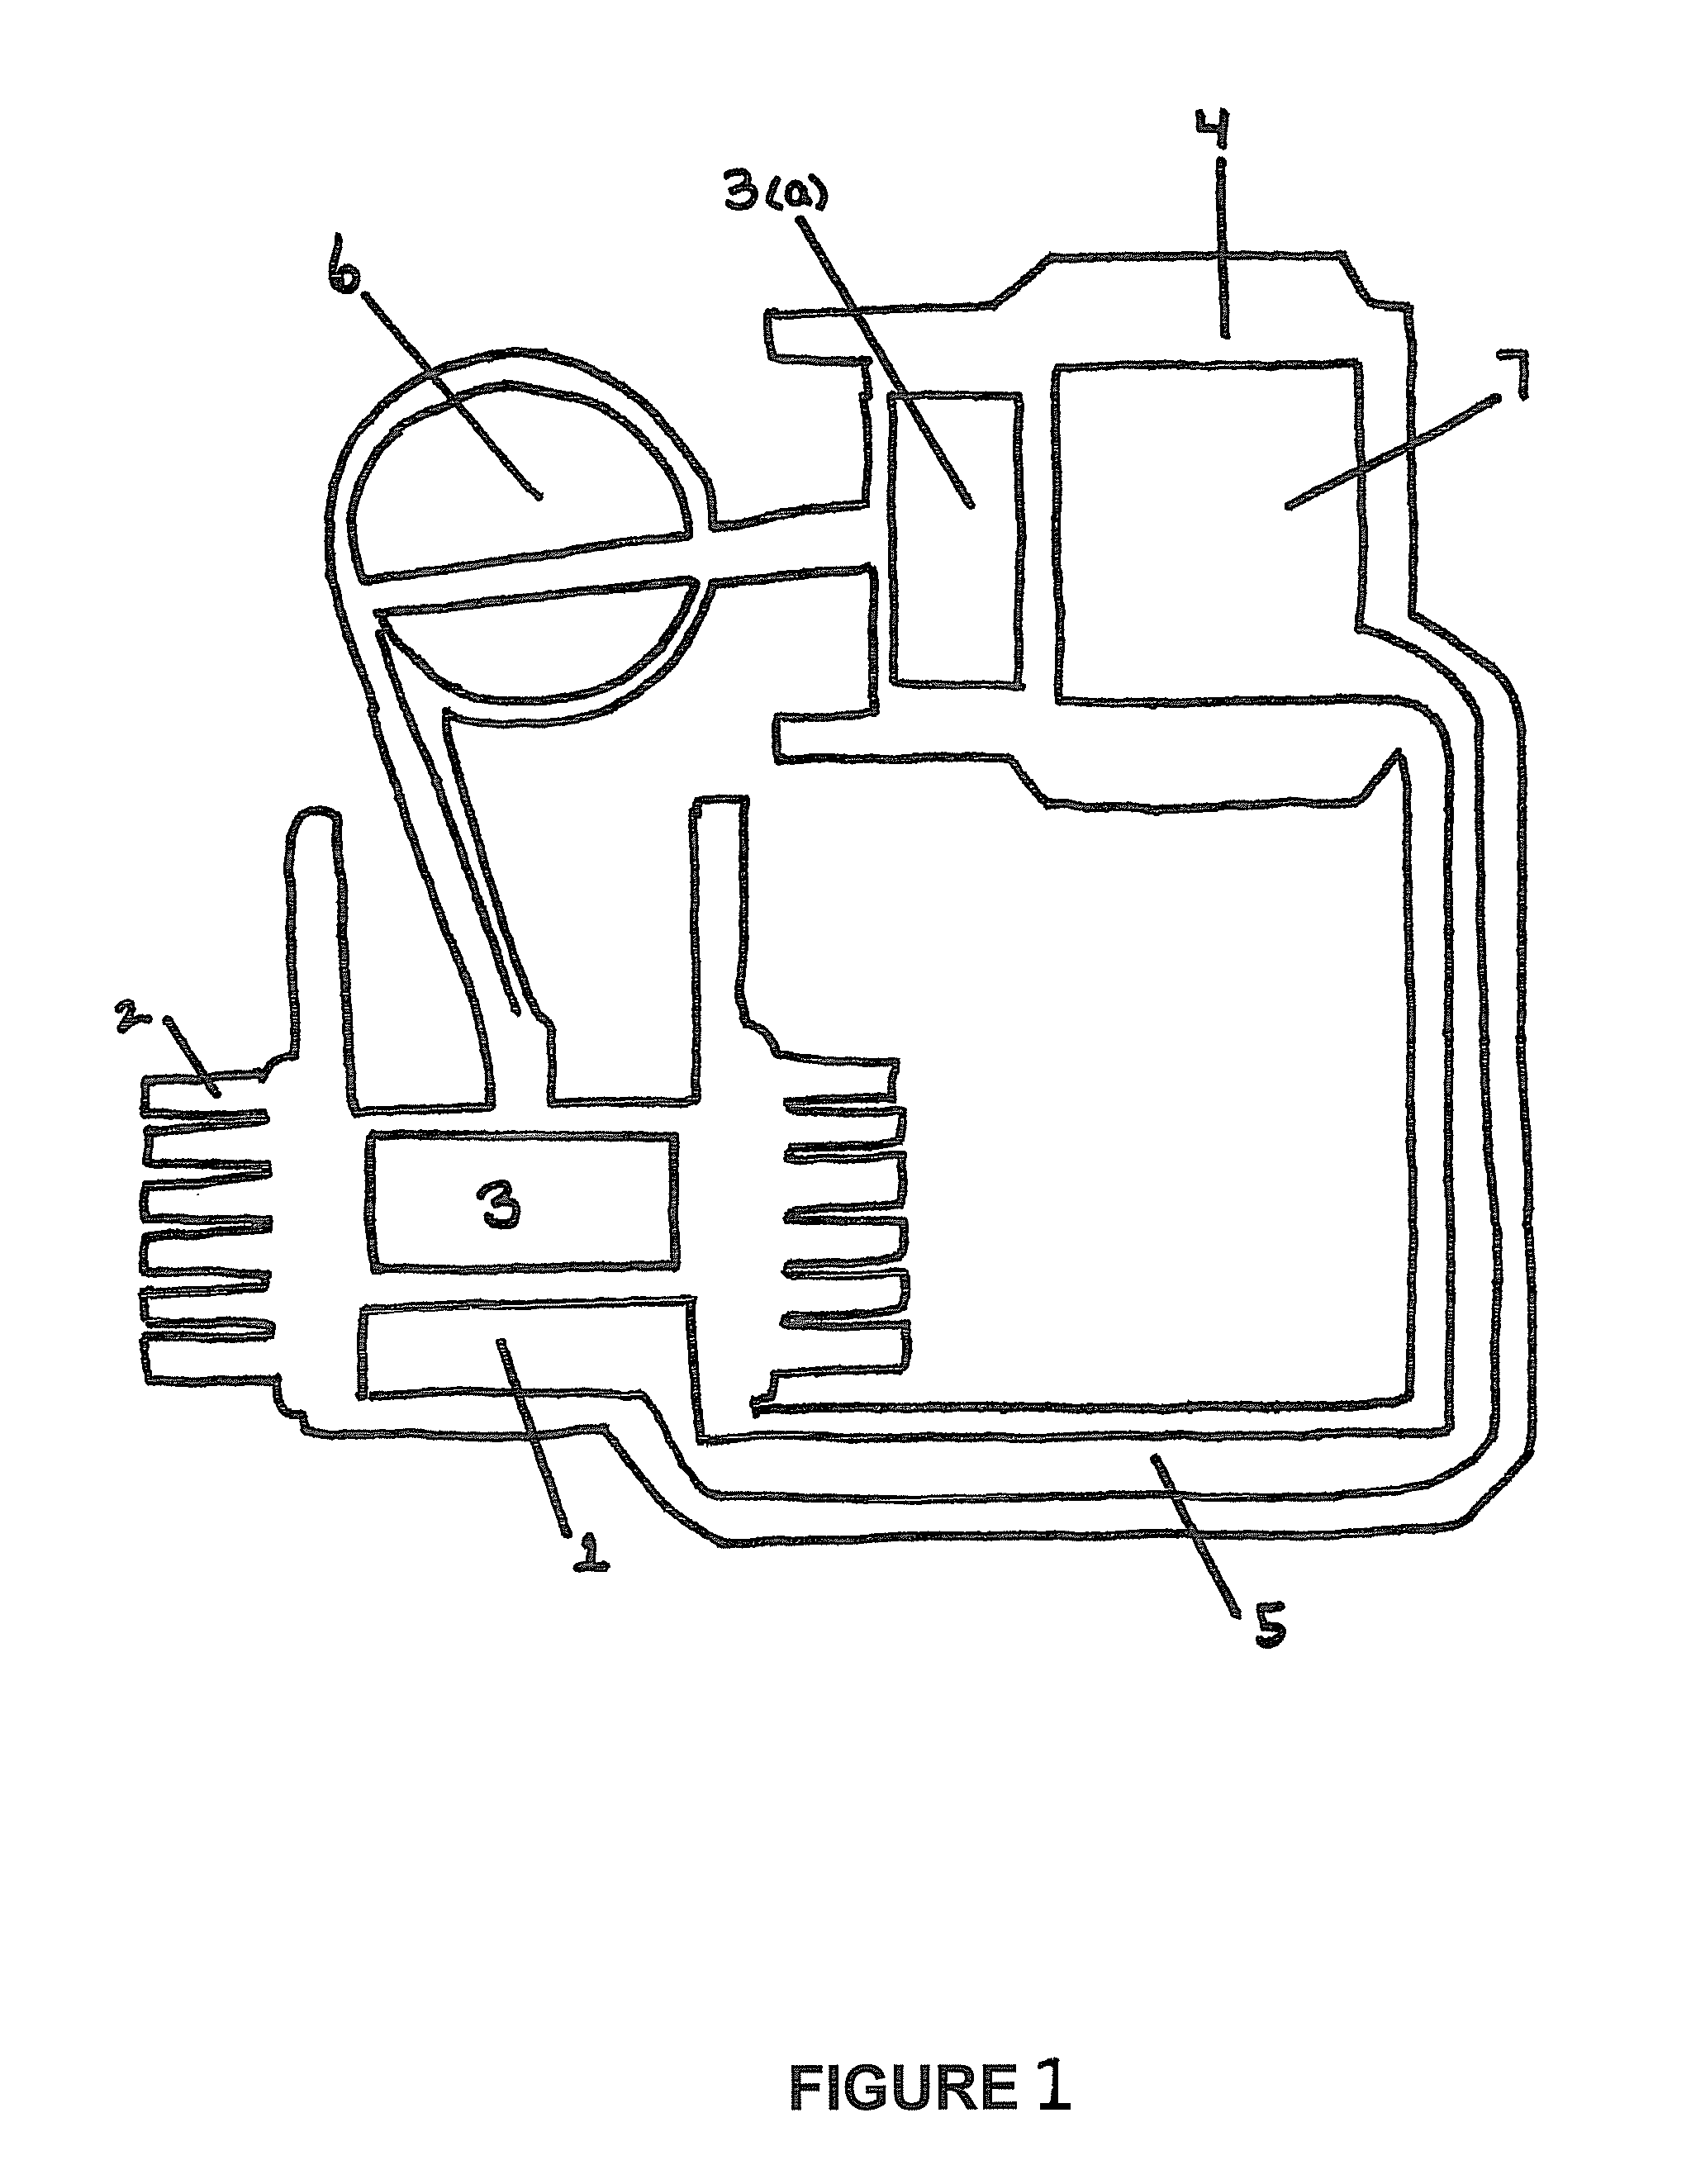 Patent Us8793992 Thermoelectric Device For Use With Stirling Engine Diagram Drawing